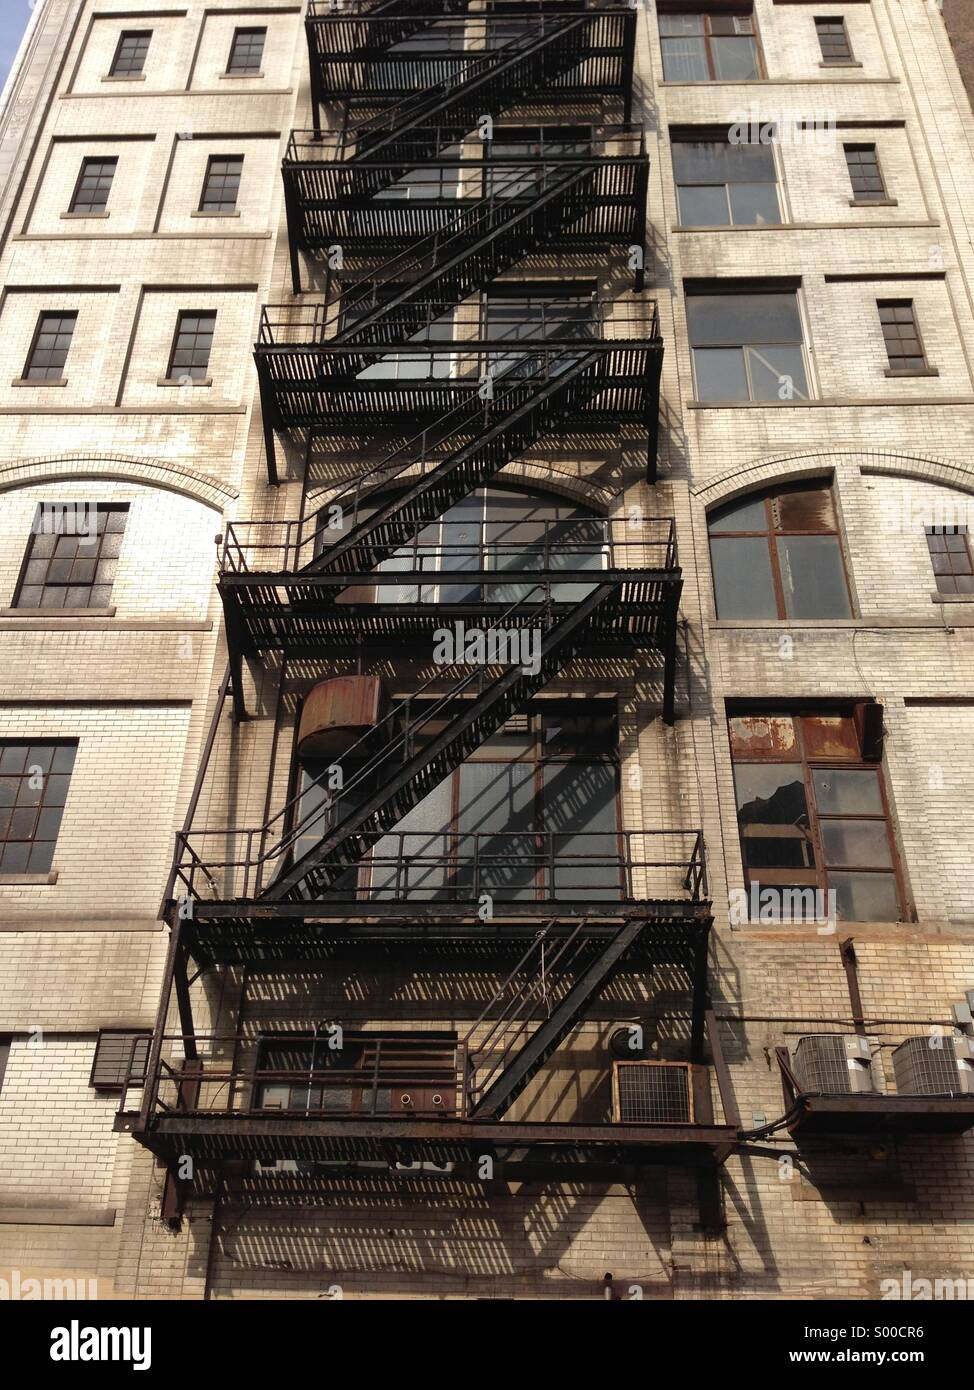 Fire escape on side of building in Detroit, Michigan - Stock Image